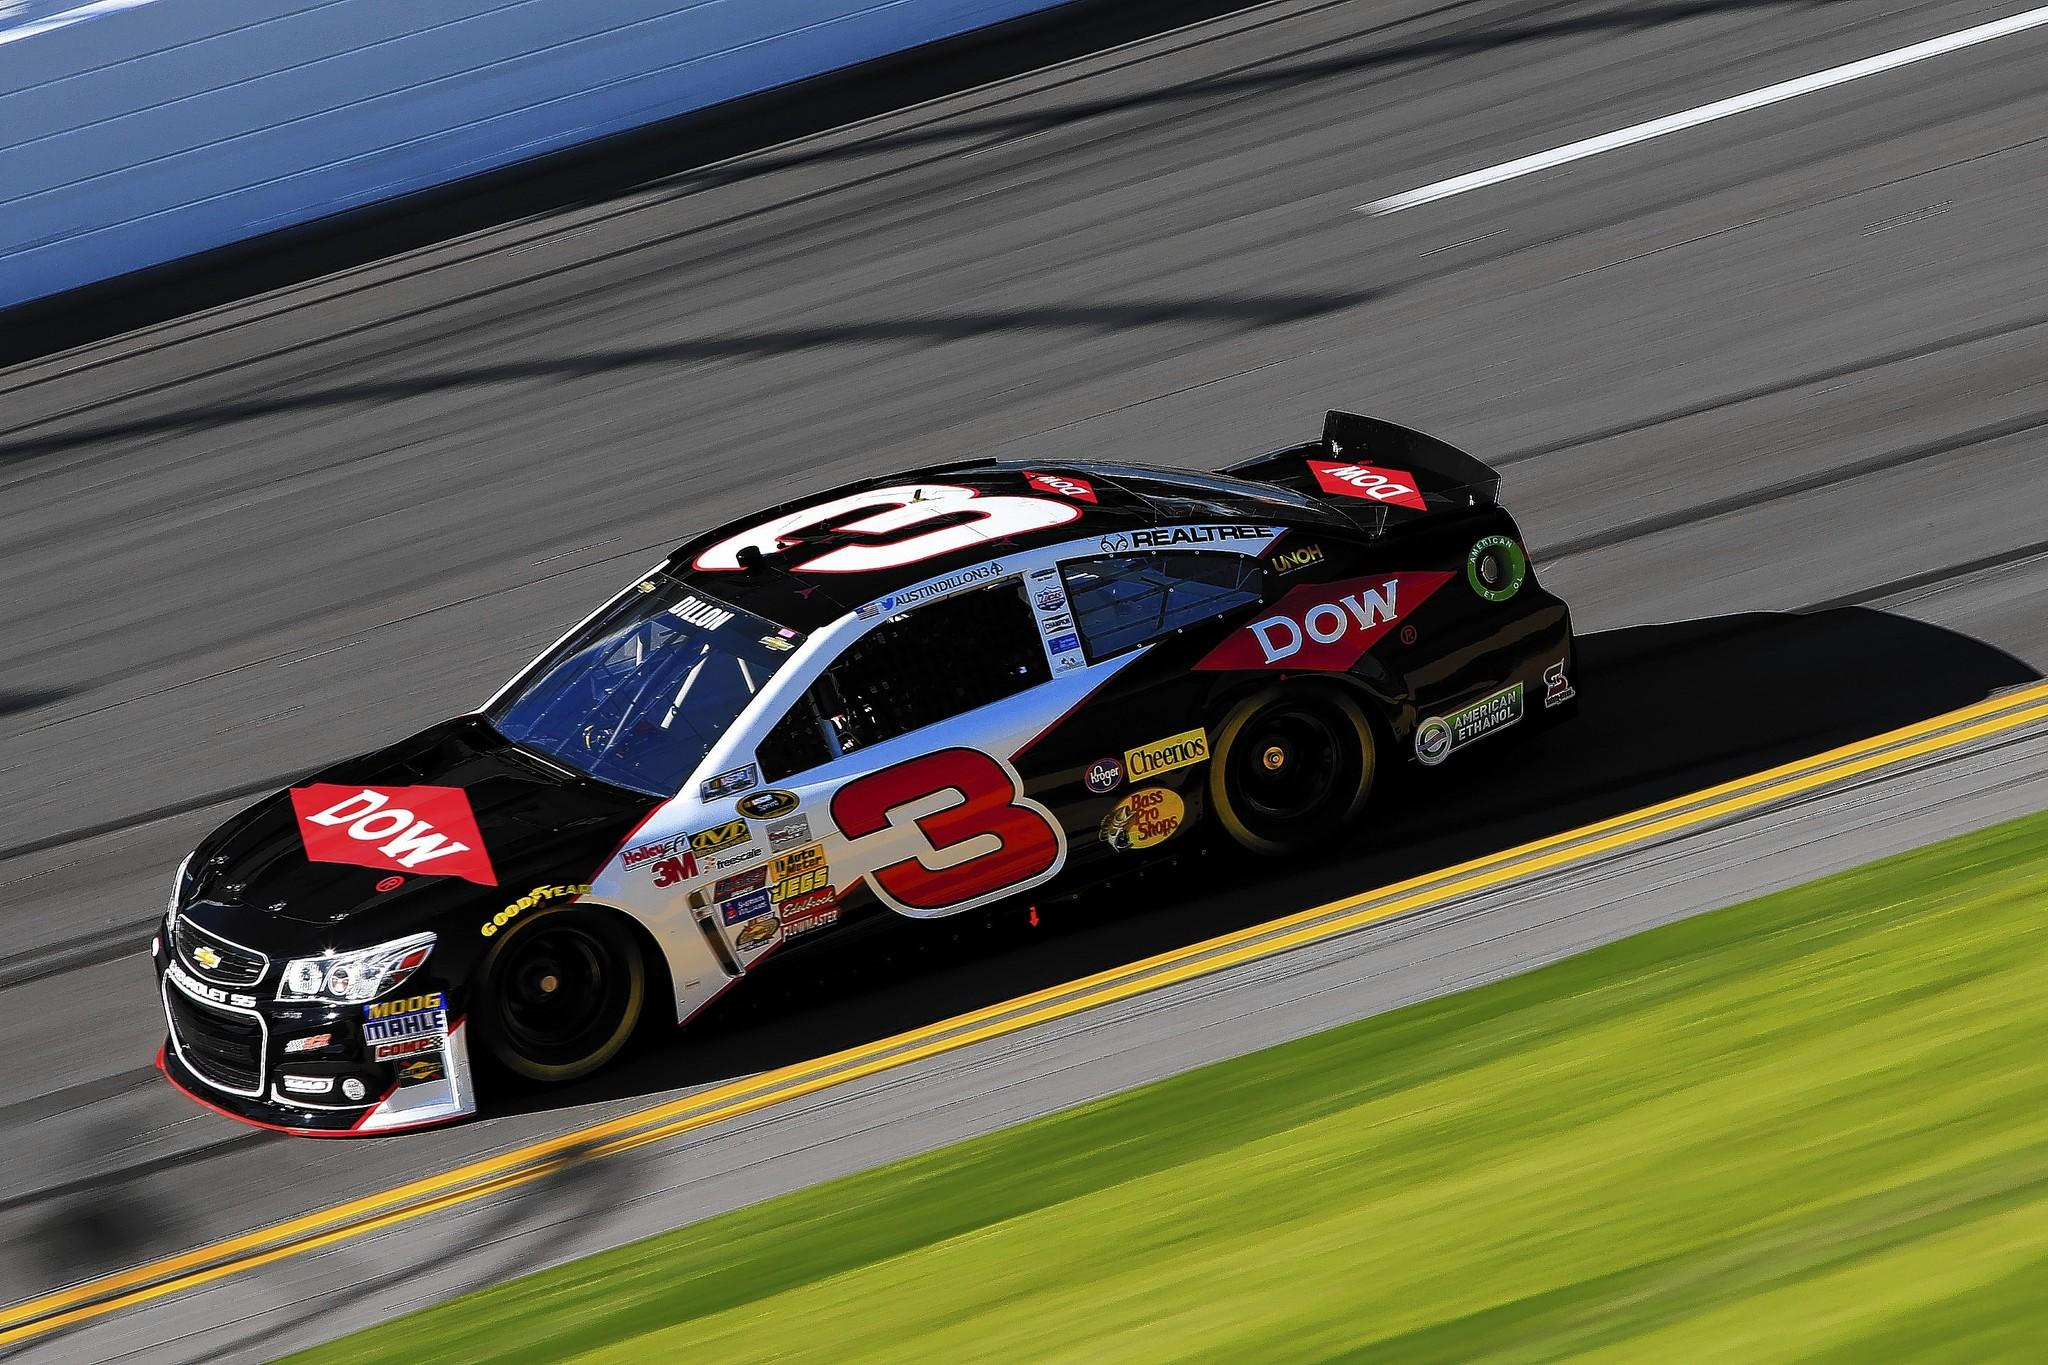 Austin Dillon, driver of the No. 3 DOW Chevrolet, qualifies for pole position for the Daytona 500 at Daytona International Speedway.